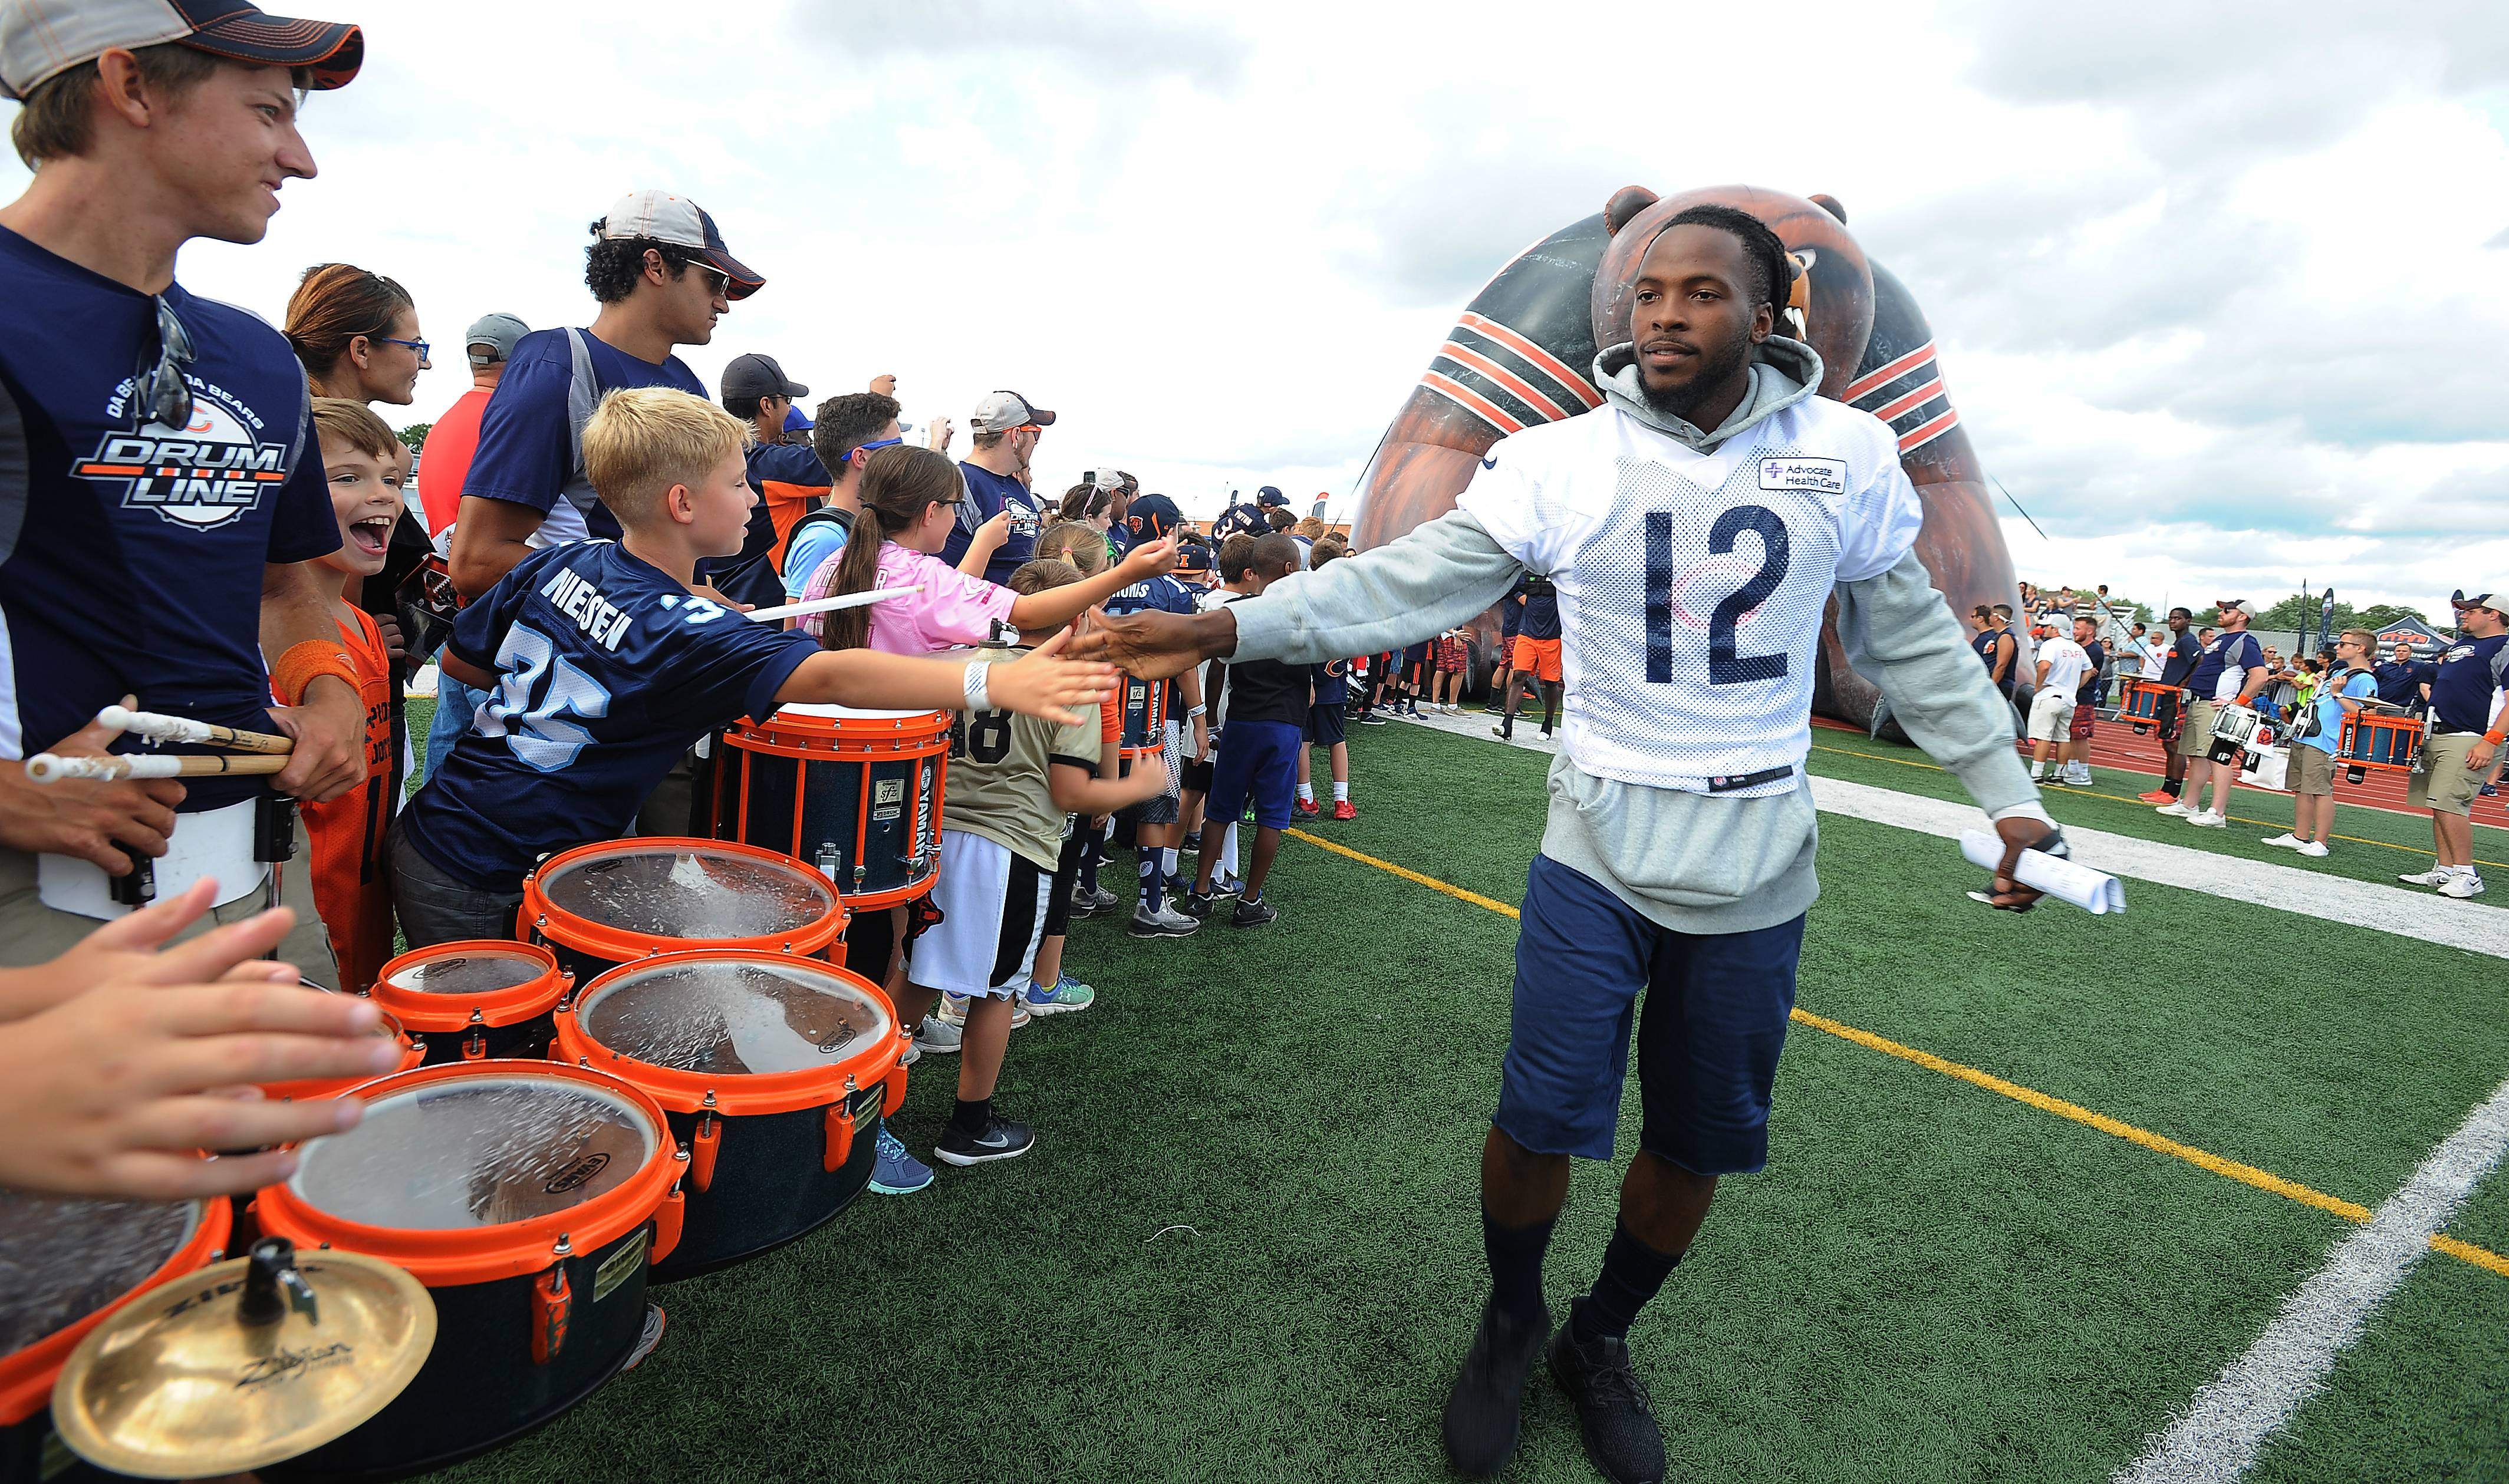 The Chicago Bears and player Markus Wheaton invade the George Gattas Memorial Stadium football field at Prospect High School for a rare practice in front of thousands of their fans.